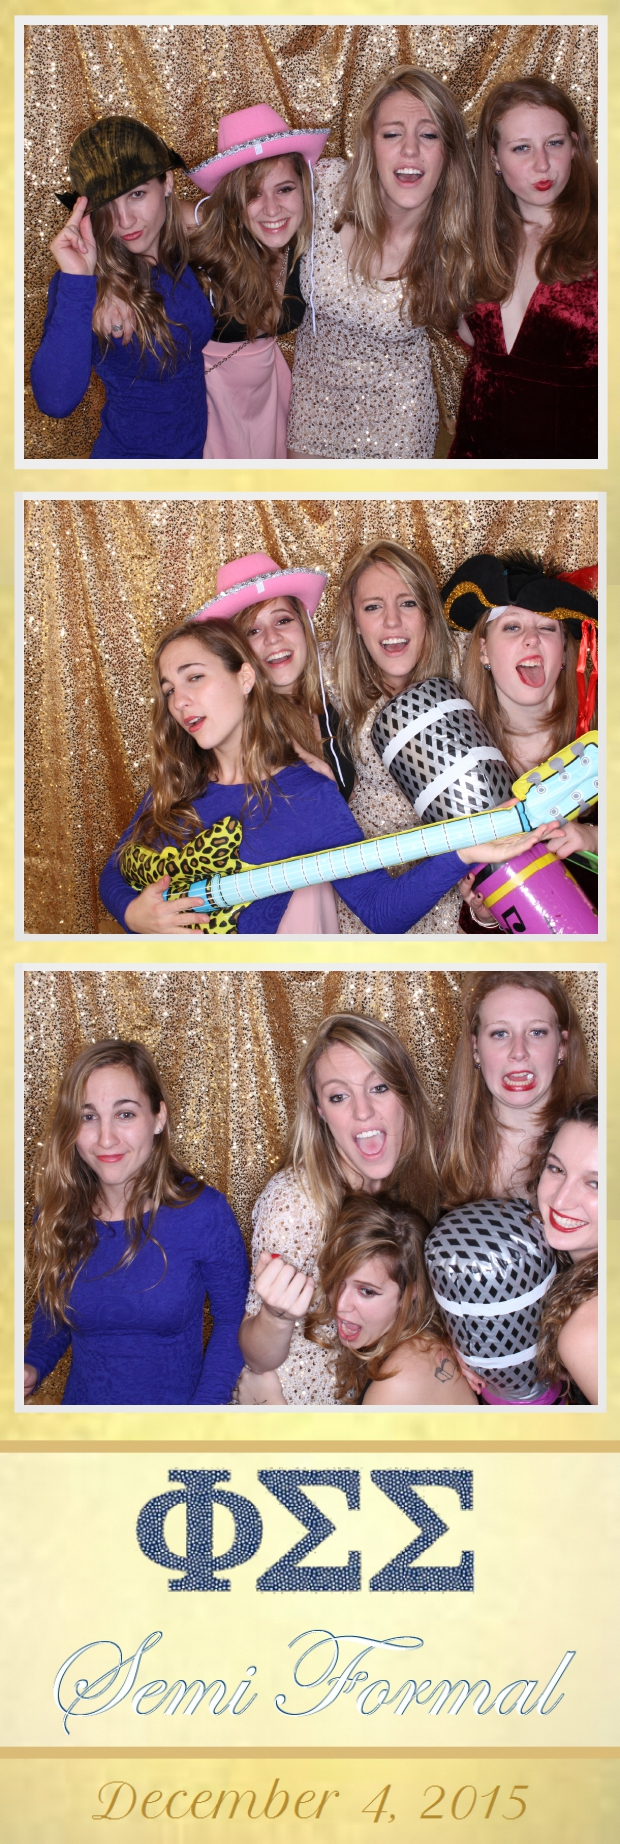 Guest House Events Photo Booth Phi Sigma Sigma Semi Formal (23).jpg